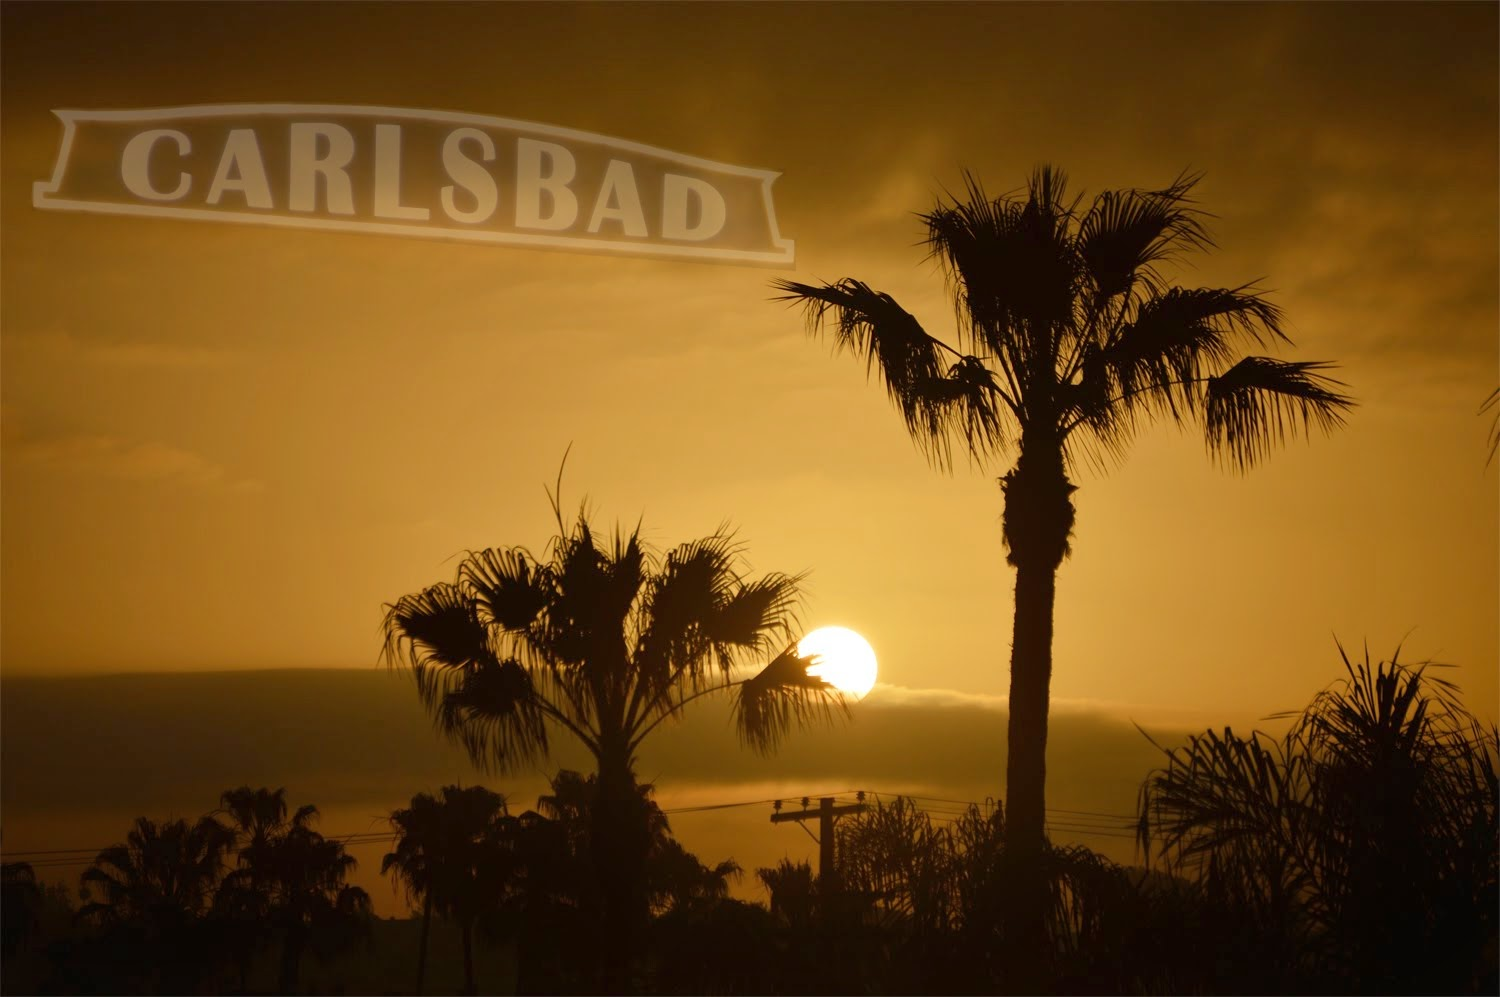 Carlsbad California Images